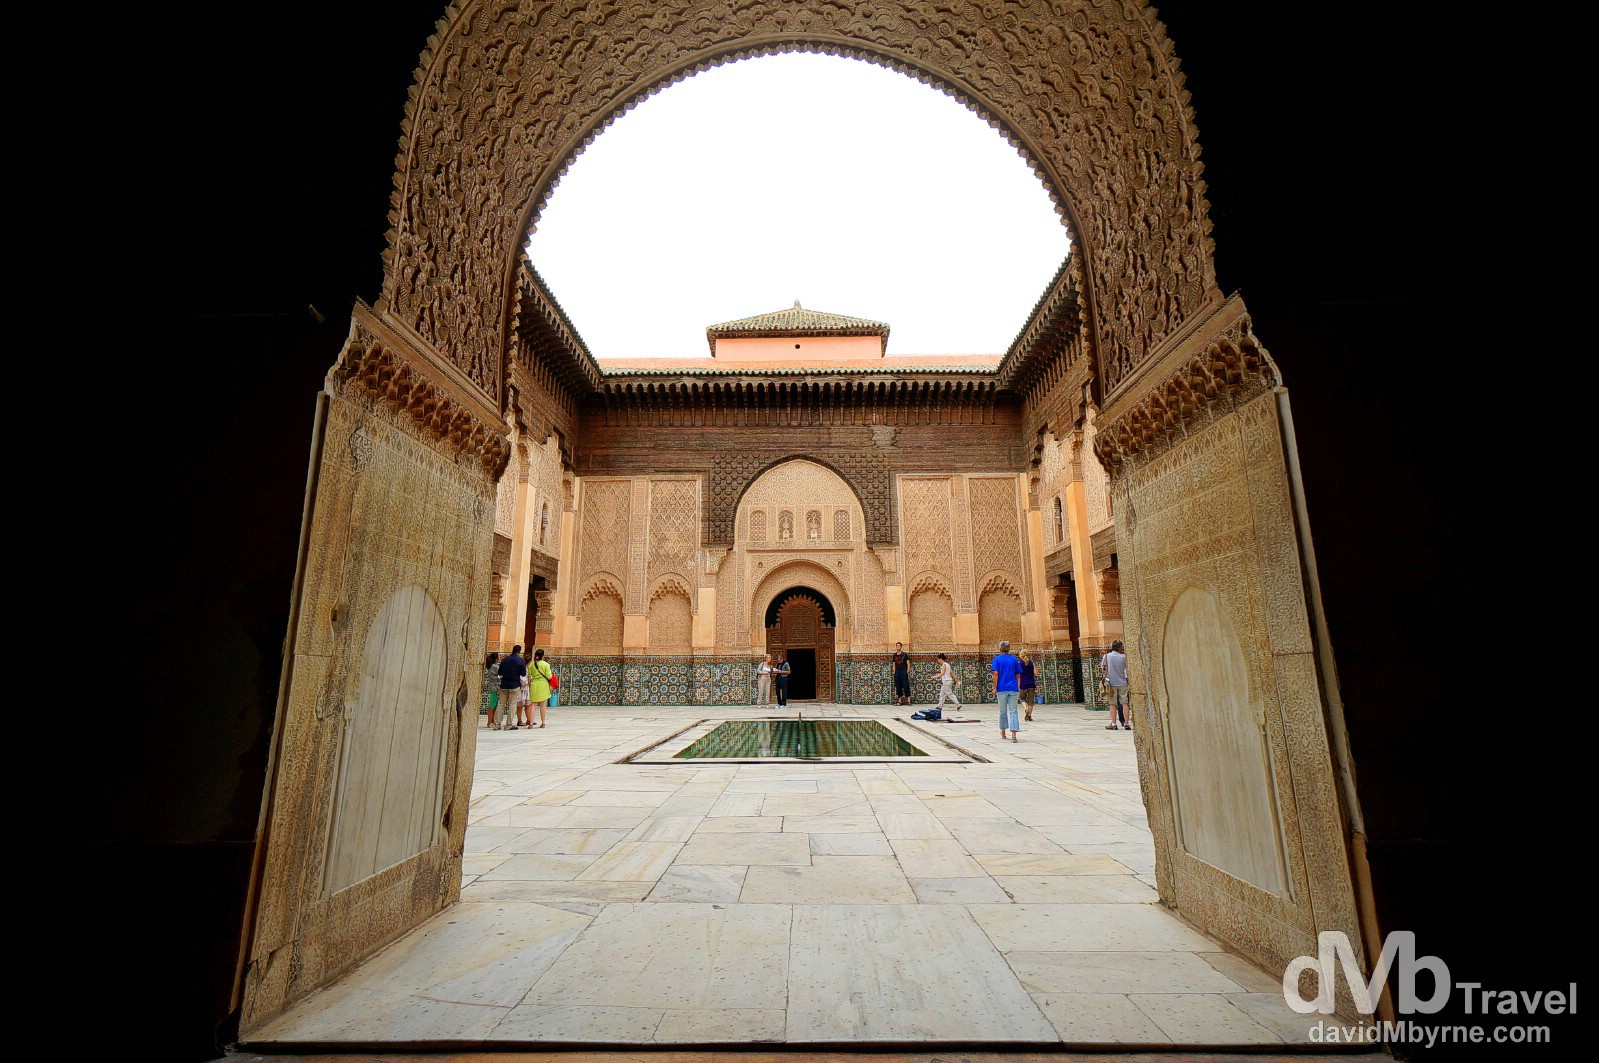 Ali ben Youssef Merdersa, Marrakesh, Morocco. May 6th, 2014.